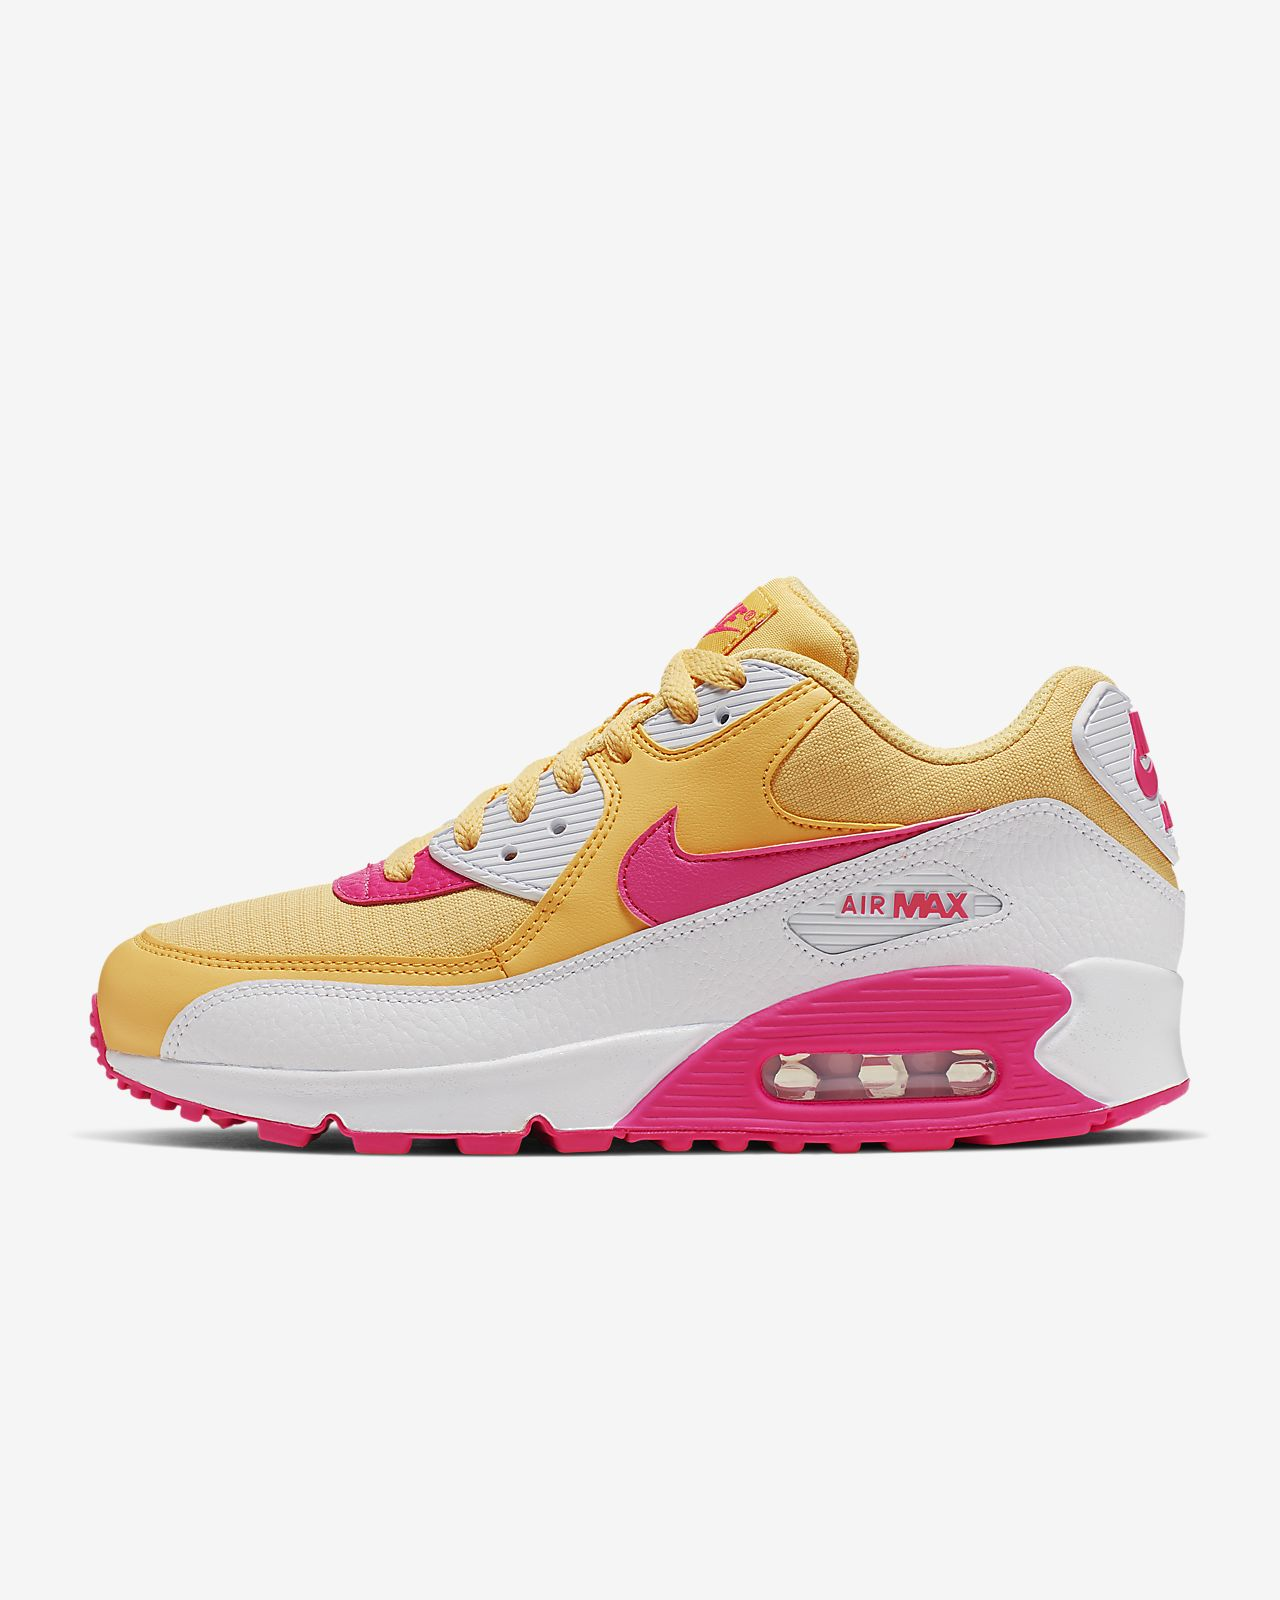 new style bdb09 de089 ... Nike Air Max 90 Women s Shoe